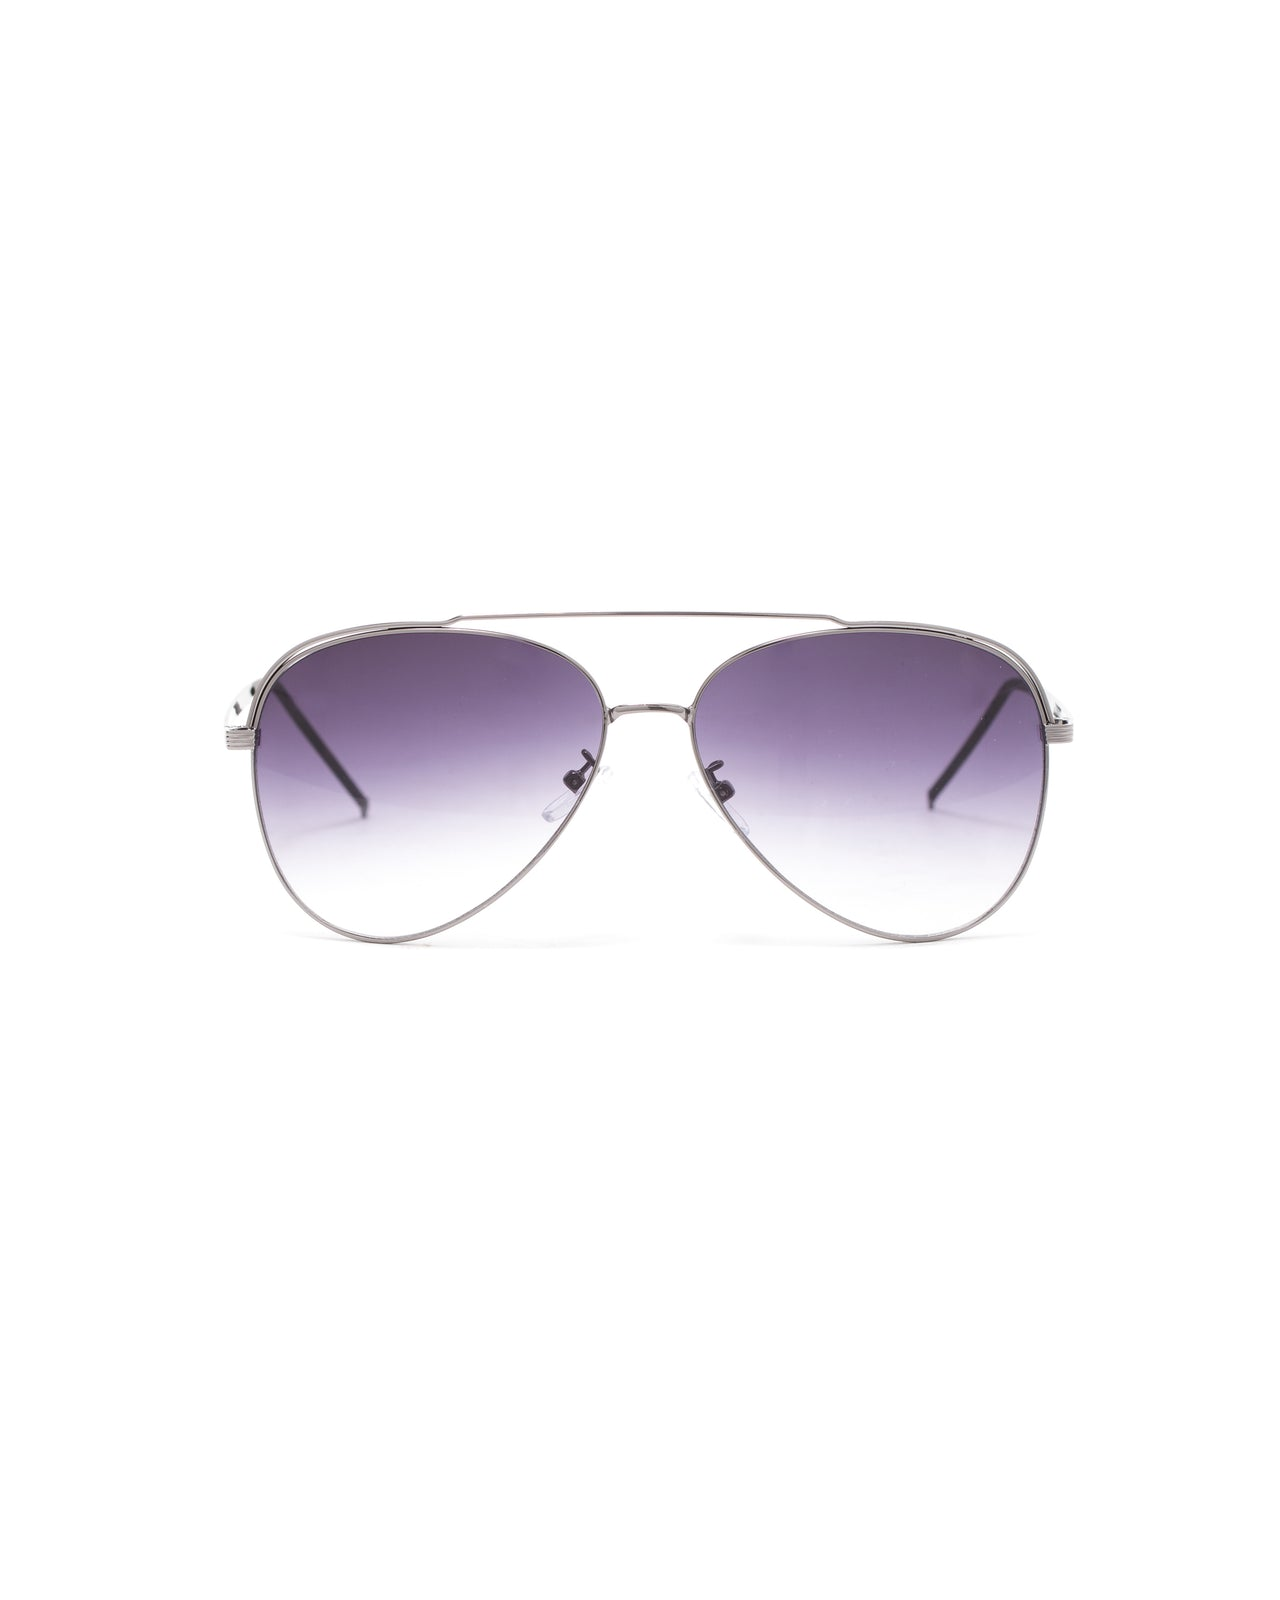 The 8022 Aviators - Color: Black | Black